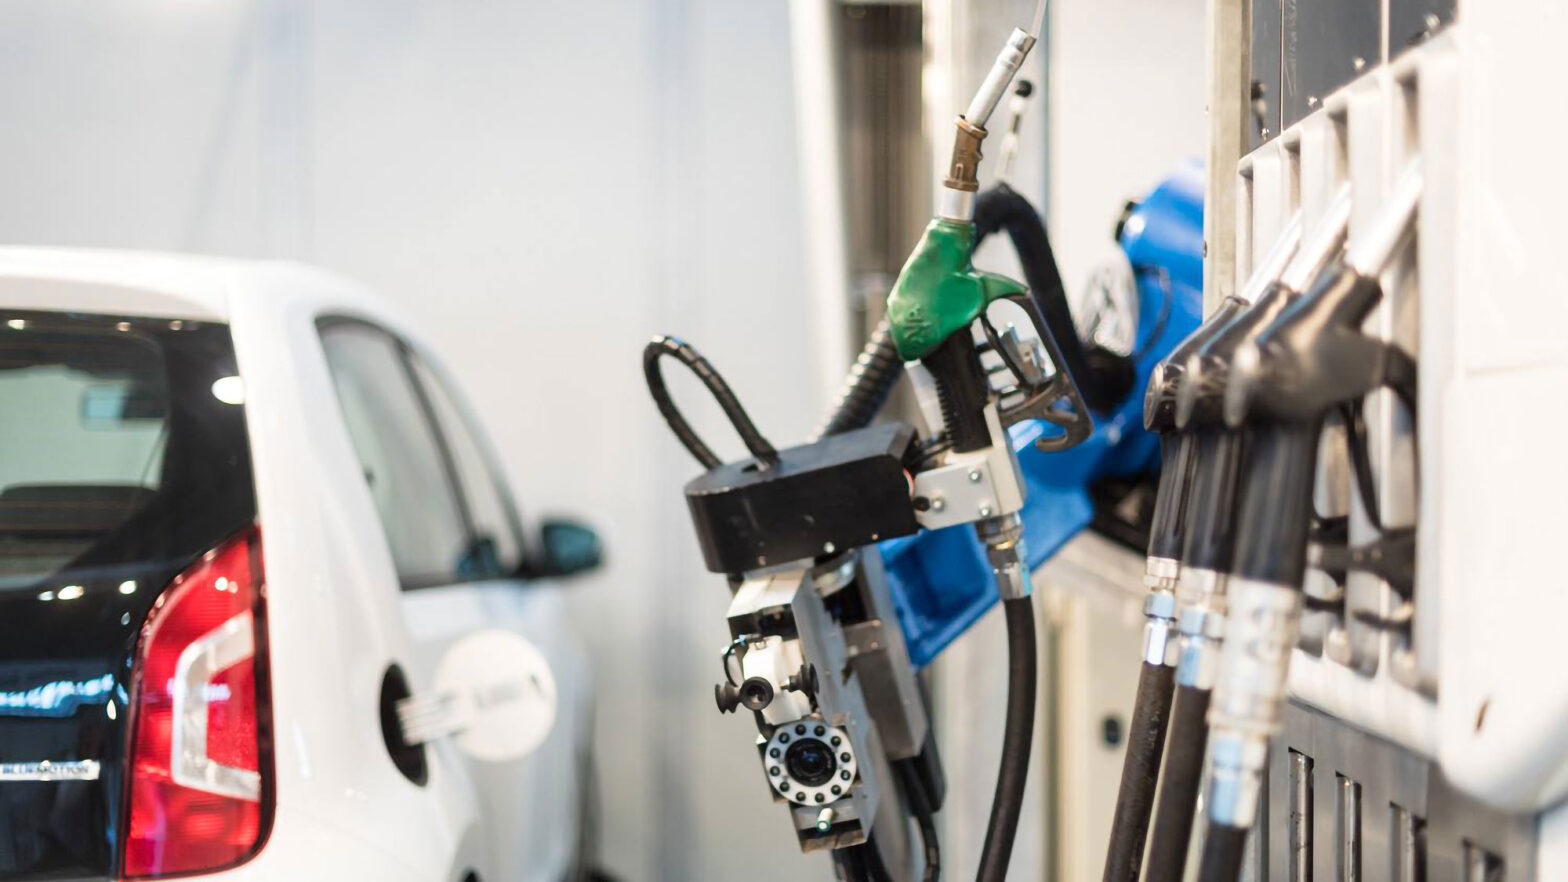 Rotec Robotic Fueling for Passenger Cars